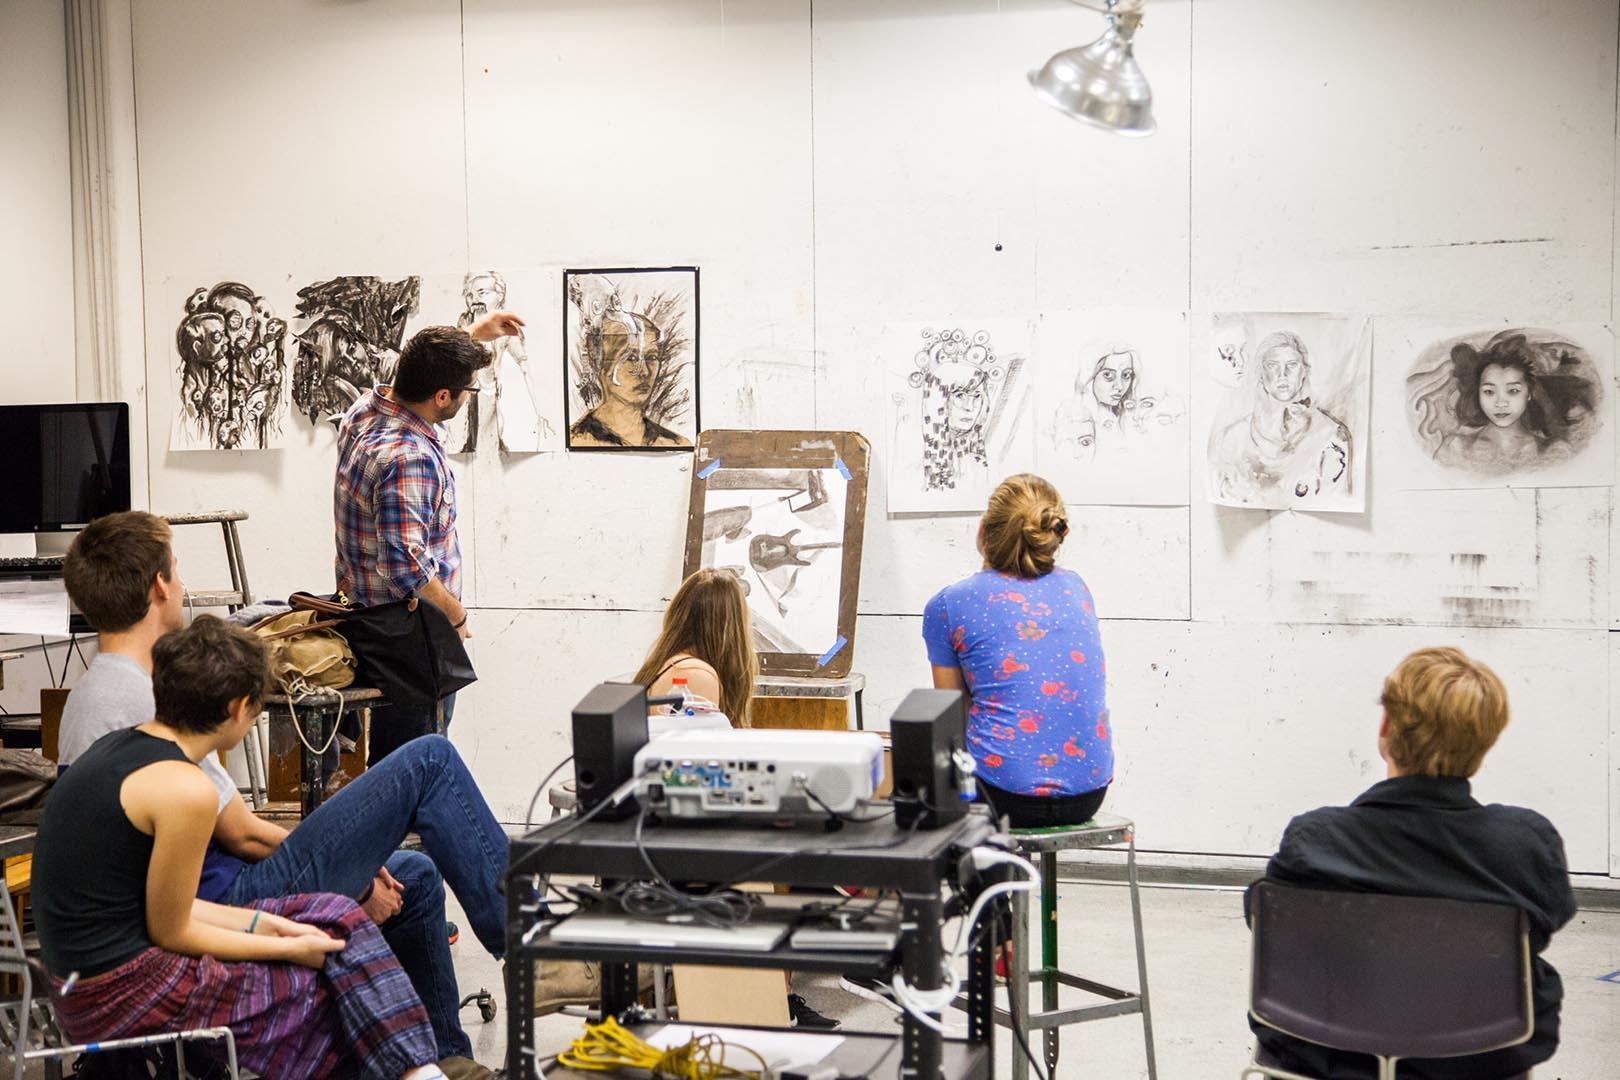 Fine arts class with faculty and students looking over drawings